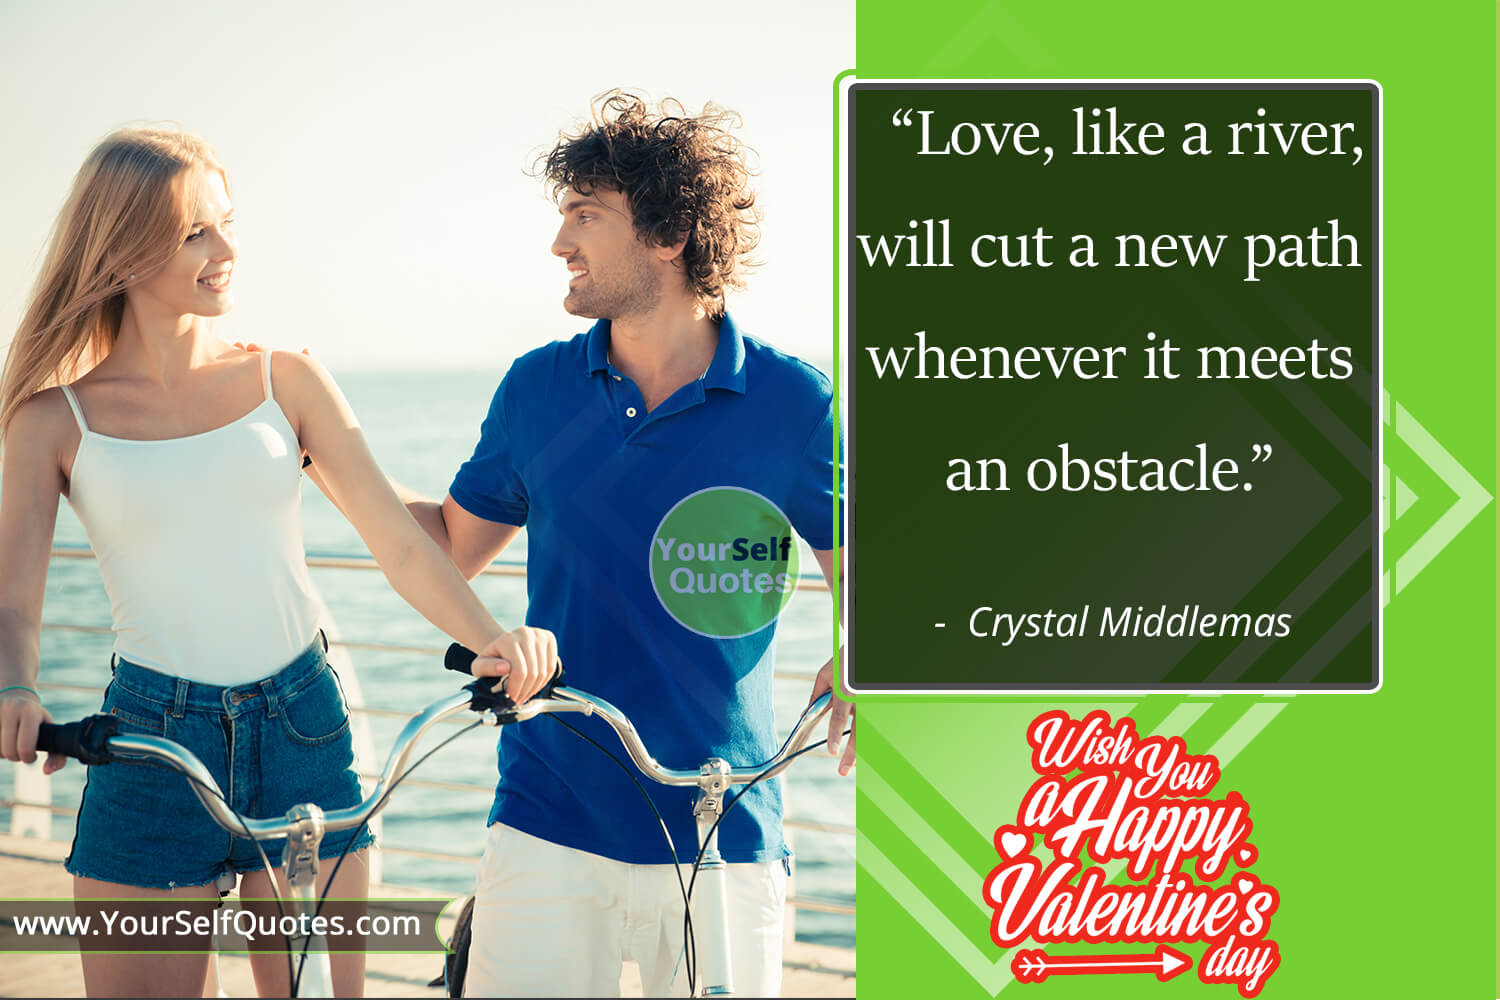 Valentine Day Quotes Photos by Crystal Middlemas